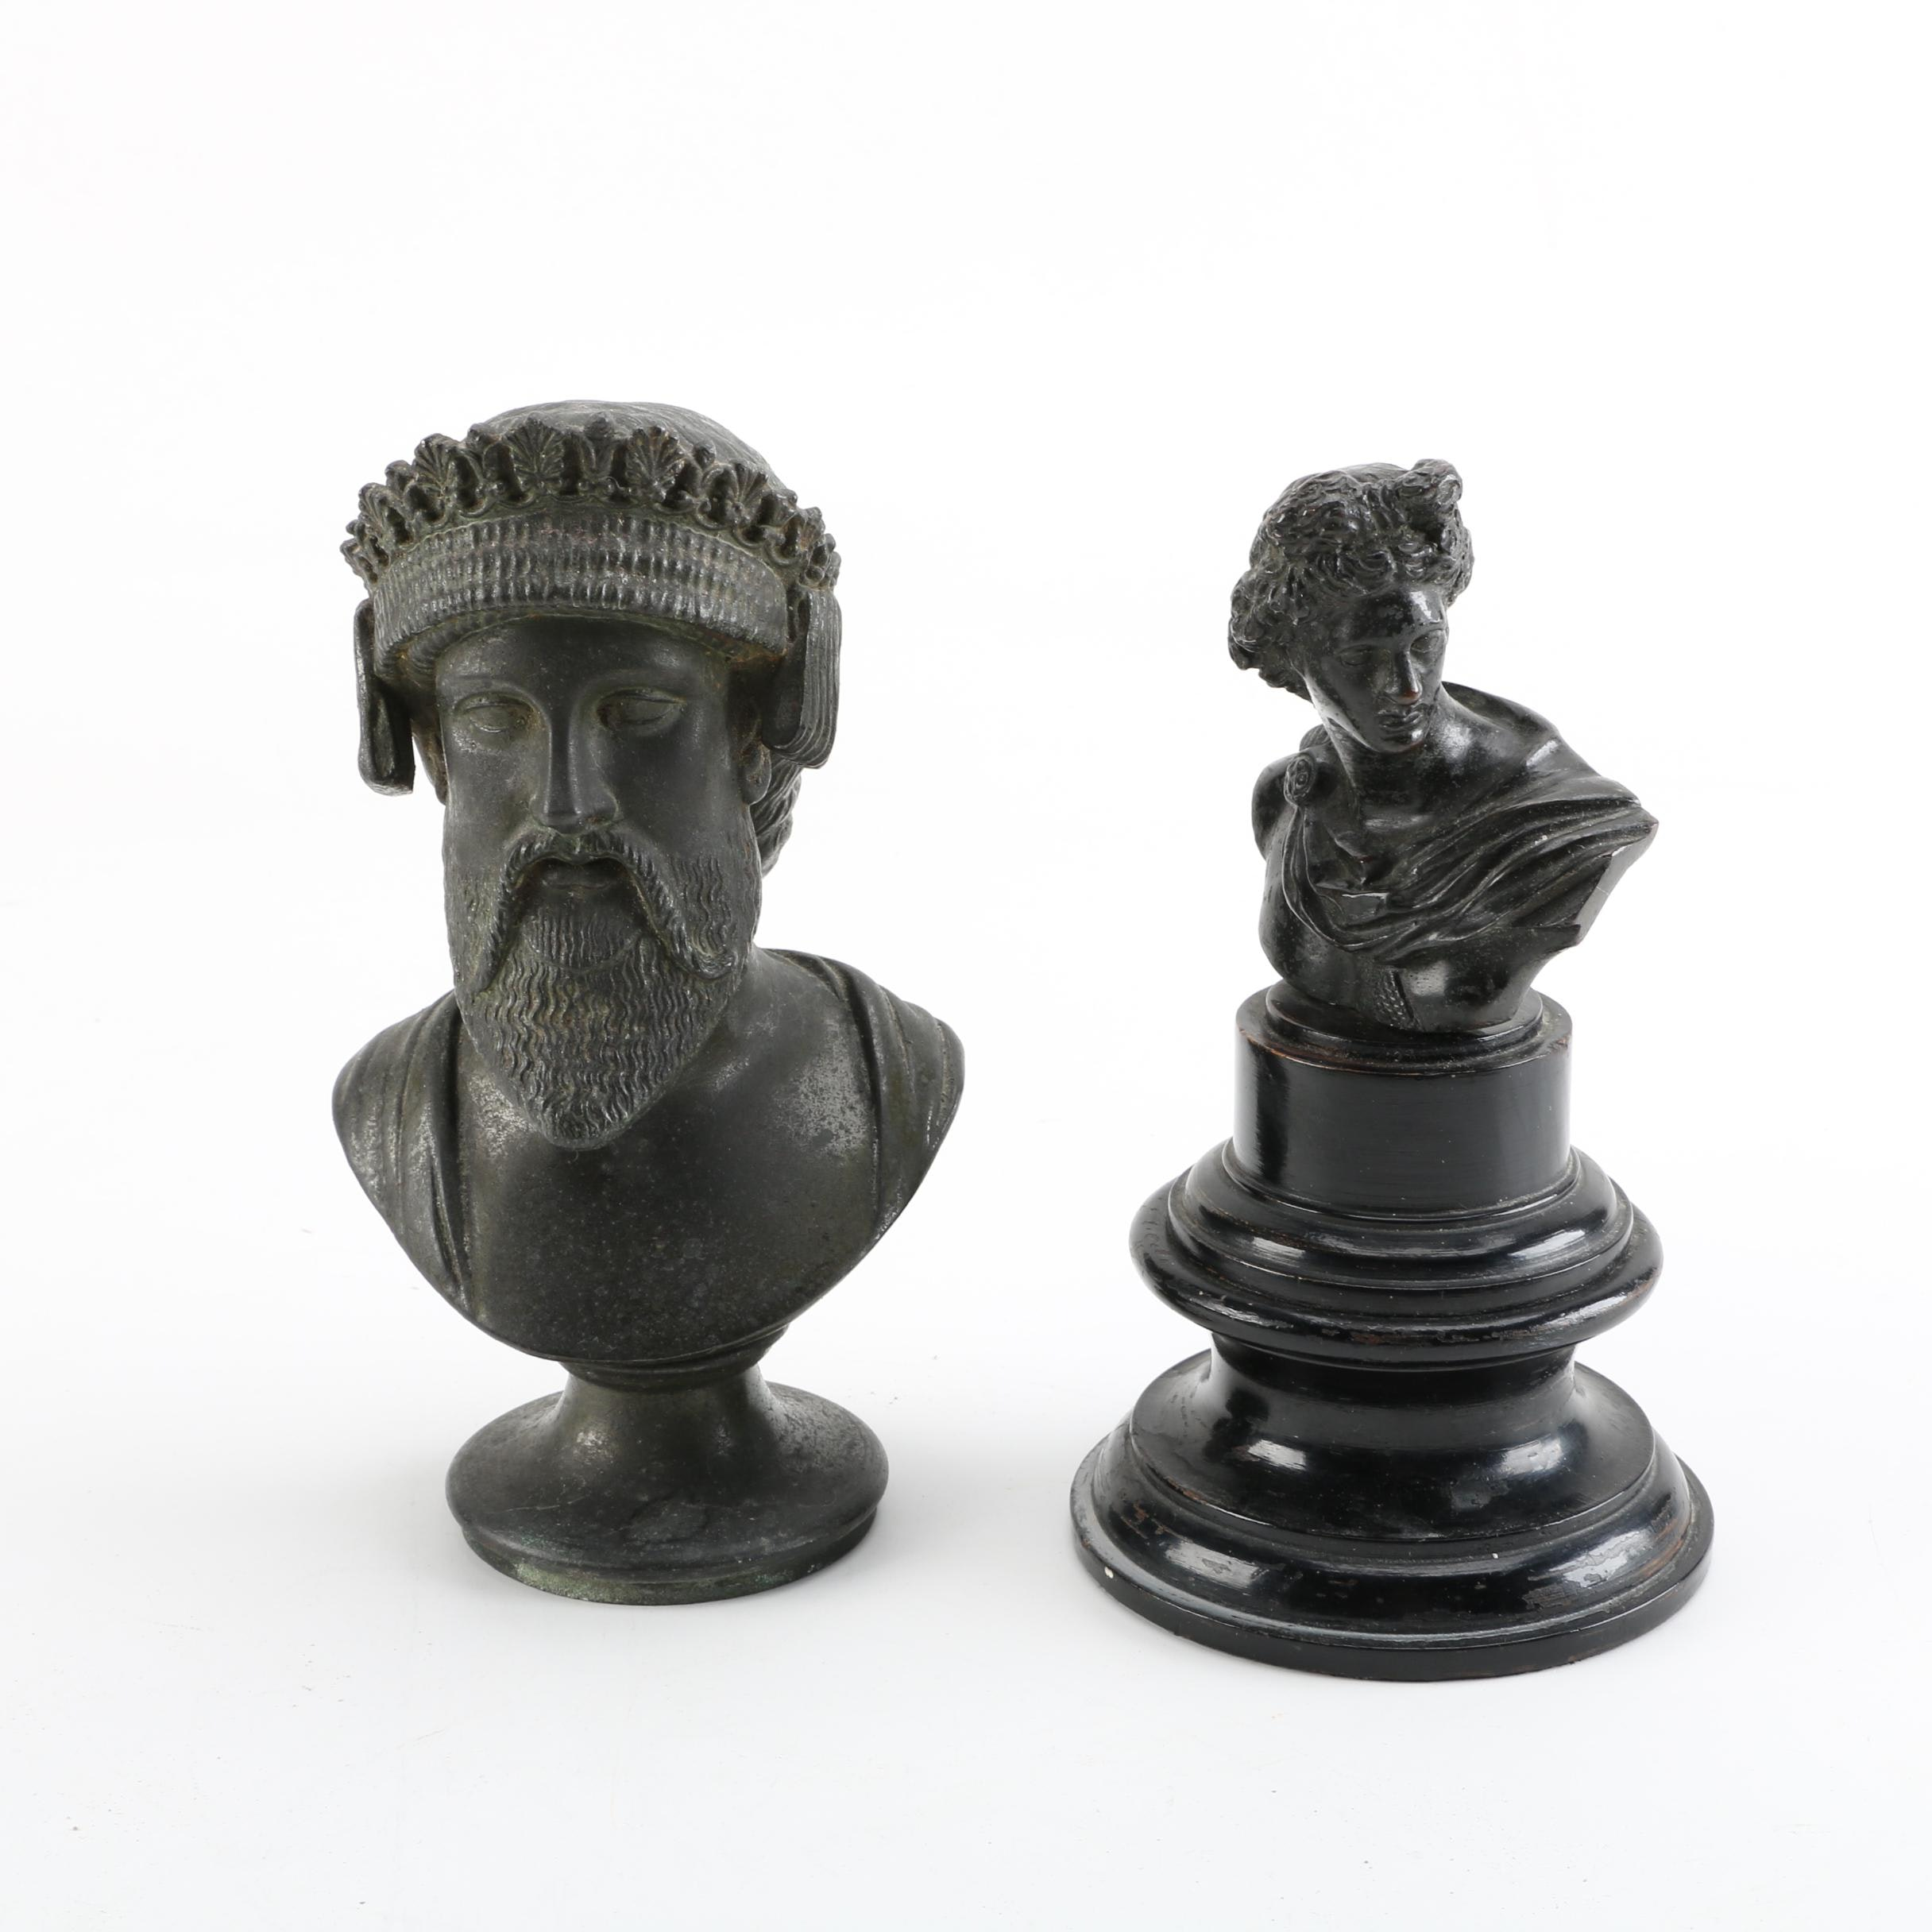 Cast Metal Sculptures After Ancient Greek Busts